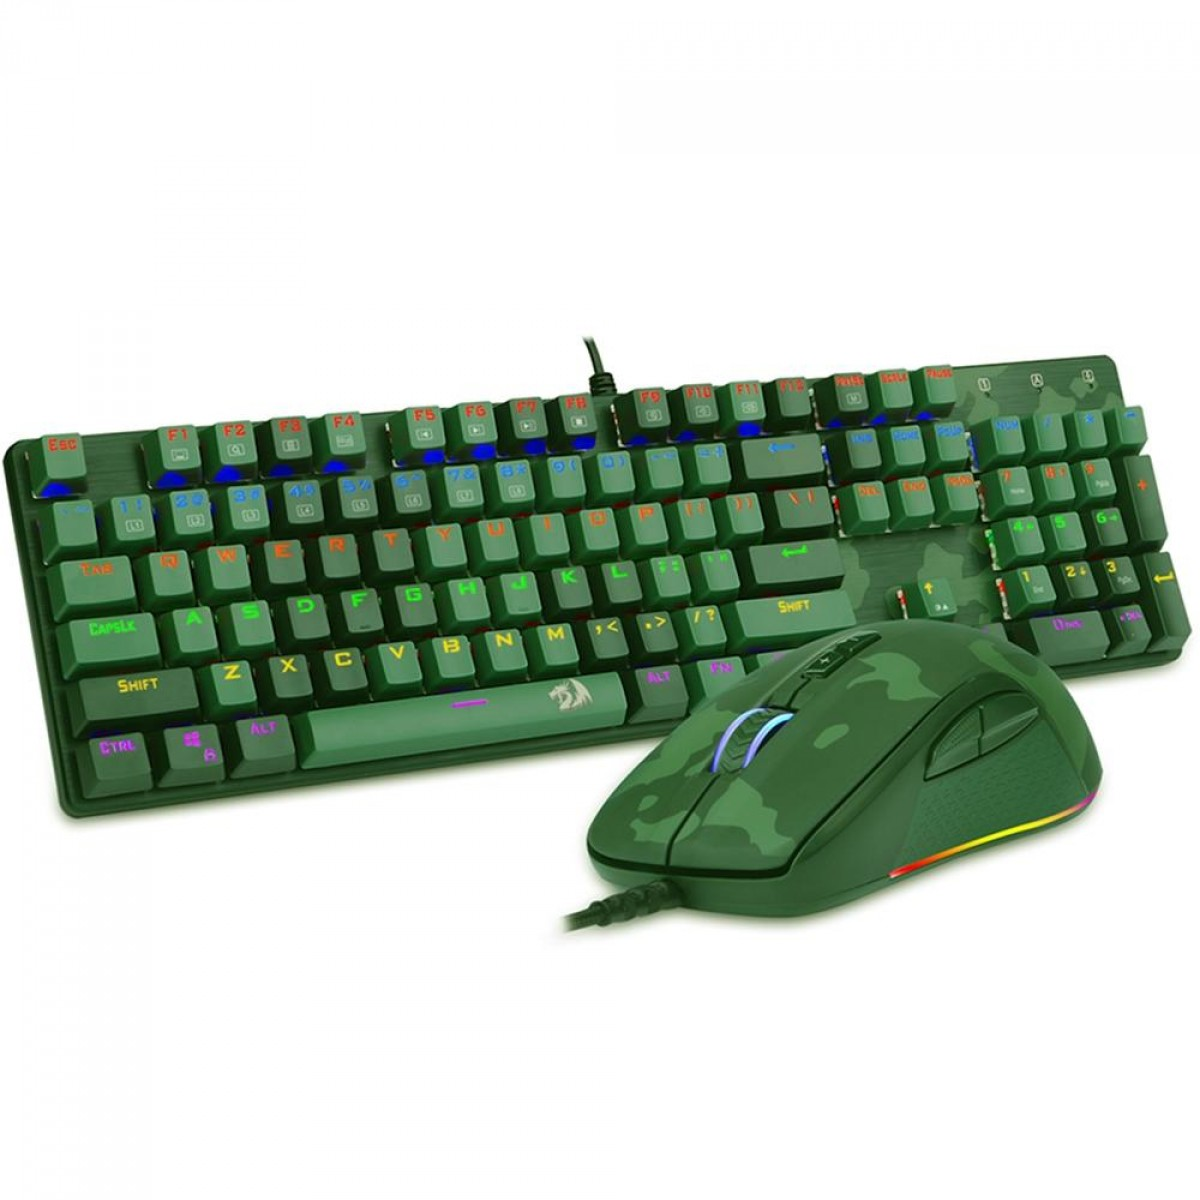 Combo Gamer Redragon Teclado Mecanico Rainbow e Mouse RGB, S108 Light Green